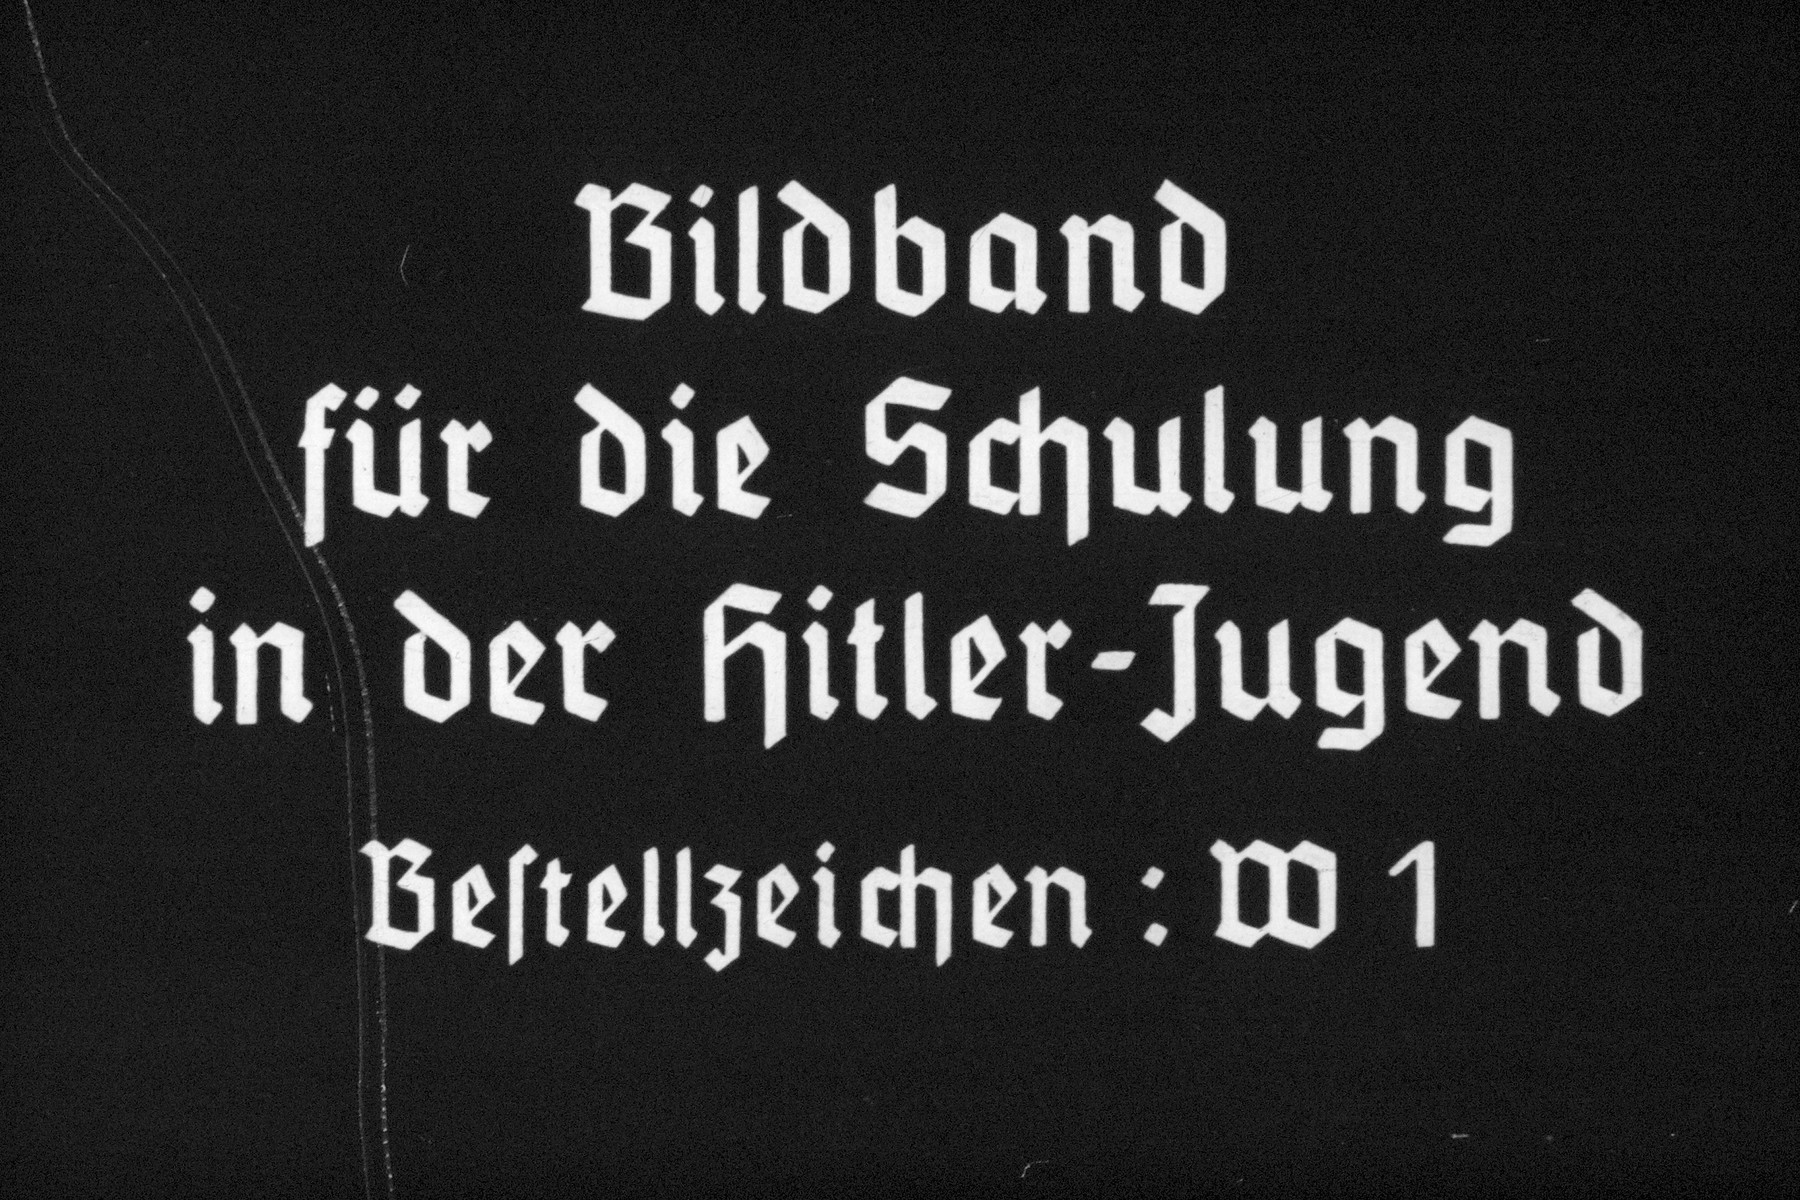 38th slide from a Hitler Youth slideshow about the aftermath of WWI, Versailles, how it was overcome and the rise of Nazism.  Bildband fur die Schulung  der Hitler-Jugend Bestellzeichen: W1 Book for the training of the Hitler Youth Order code: W1